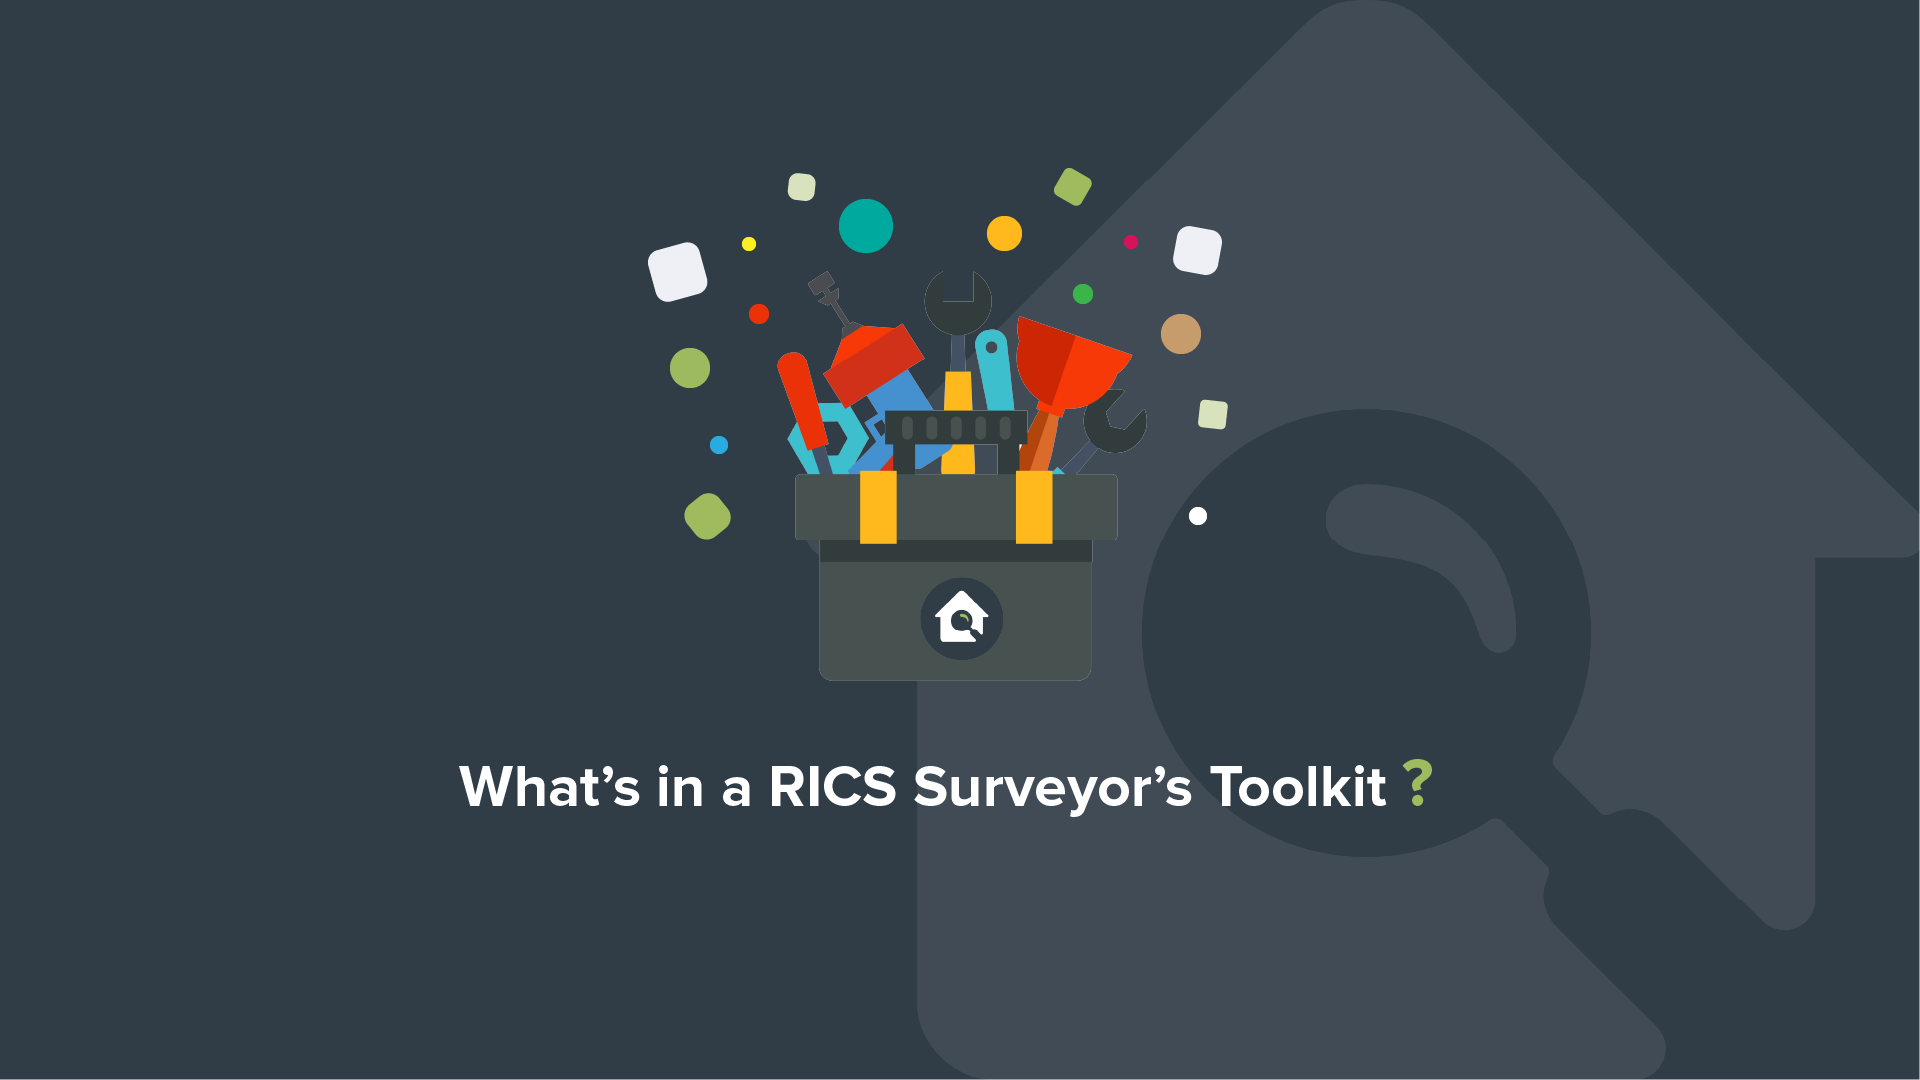 What's in a RICS Surveyor's Toolkit?